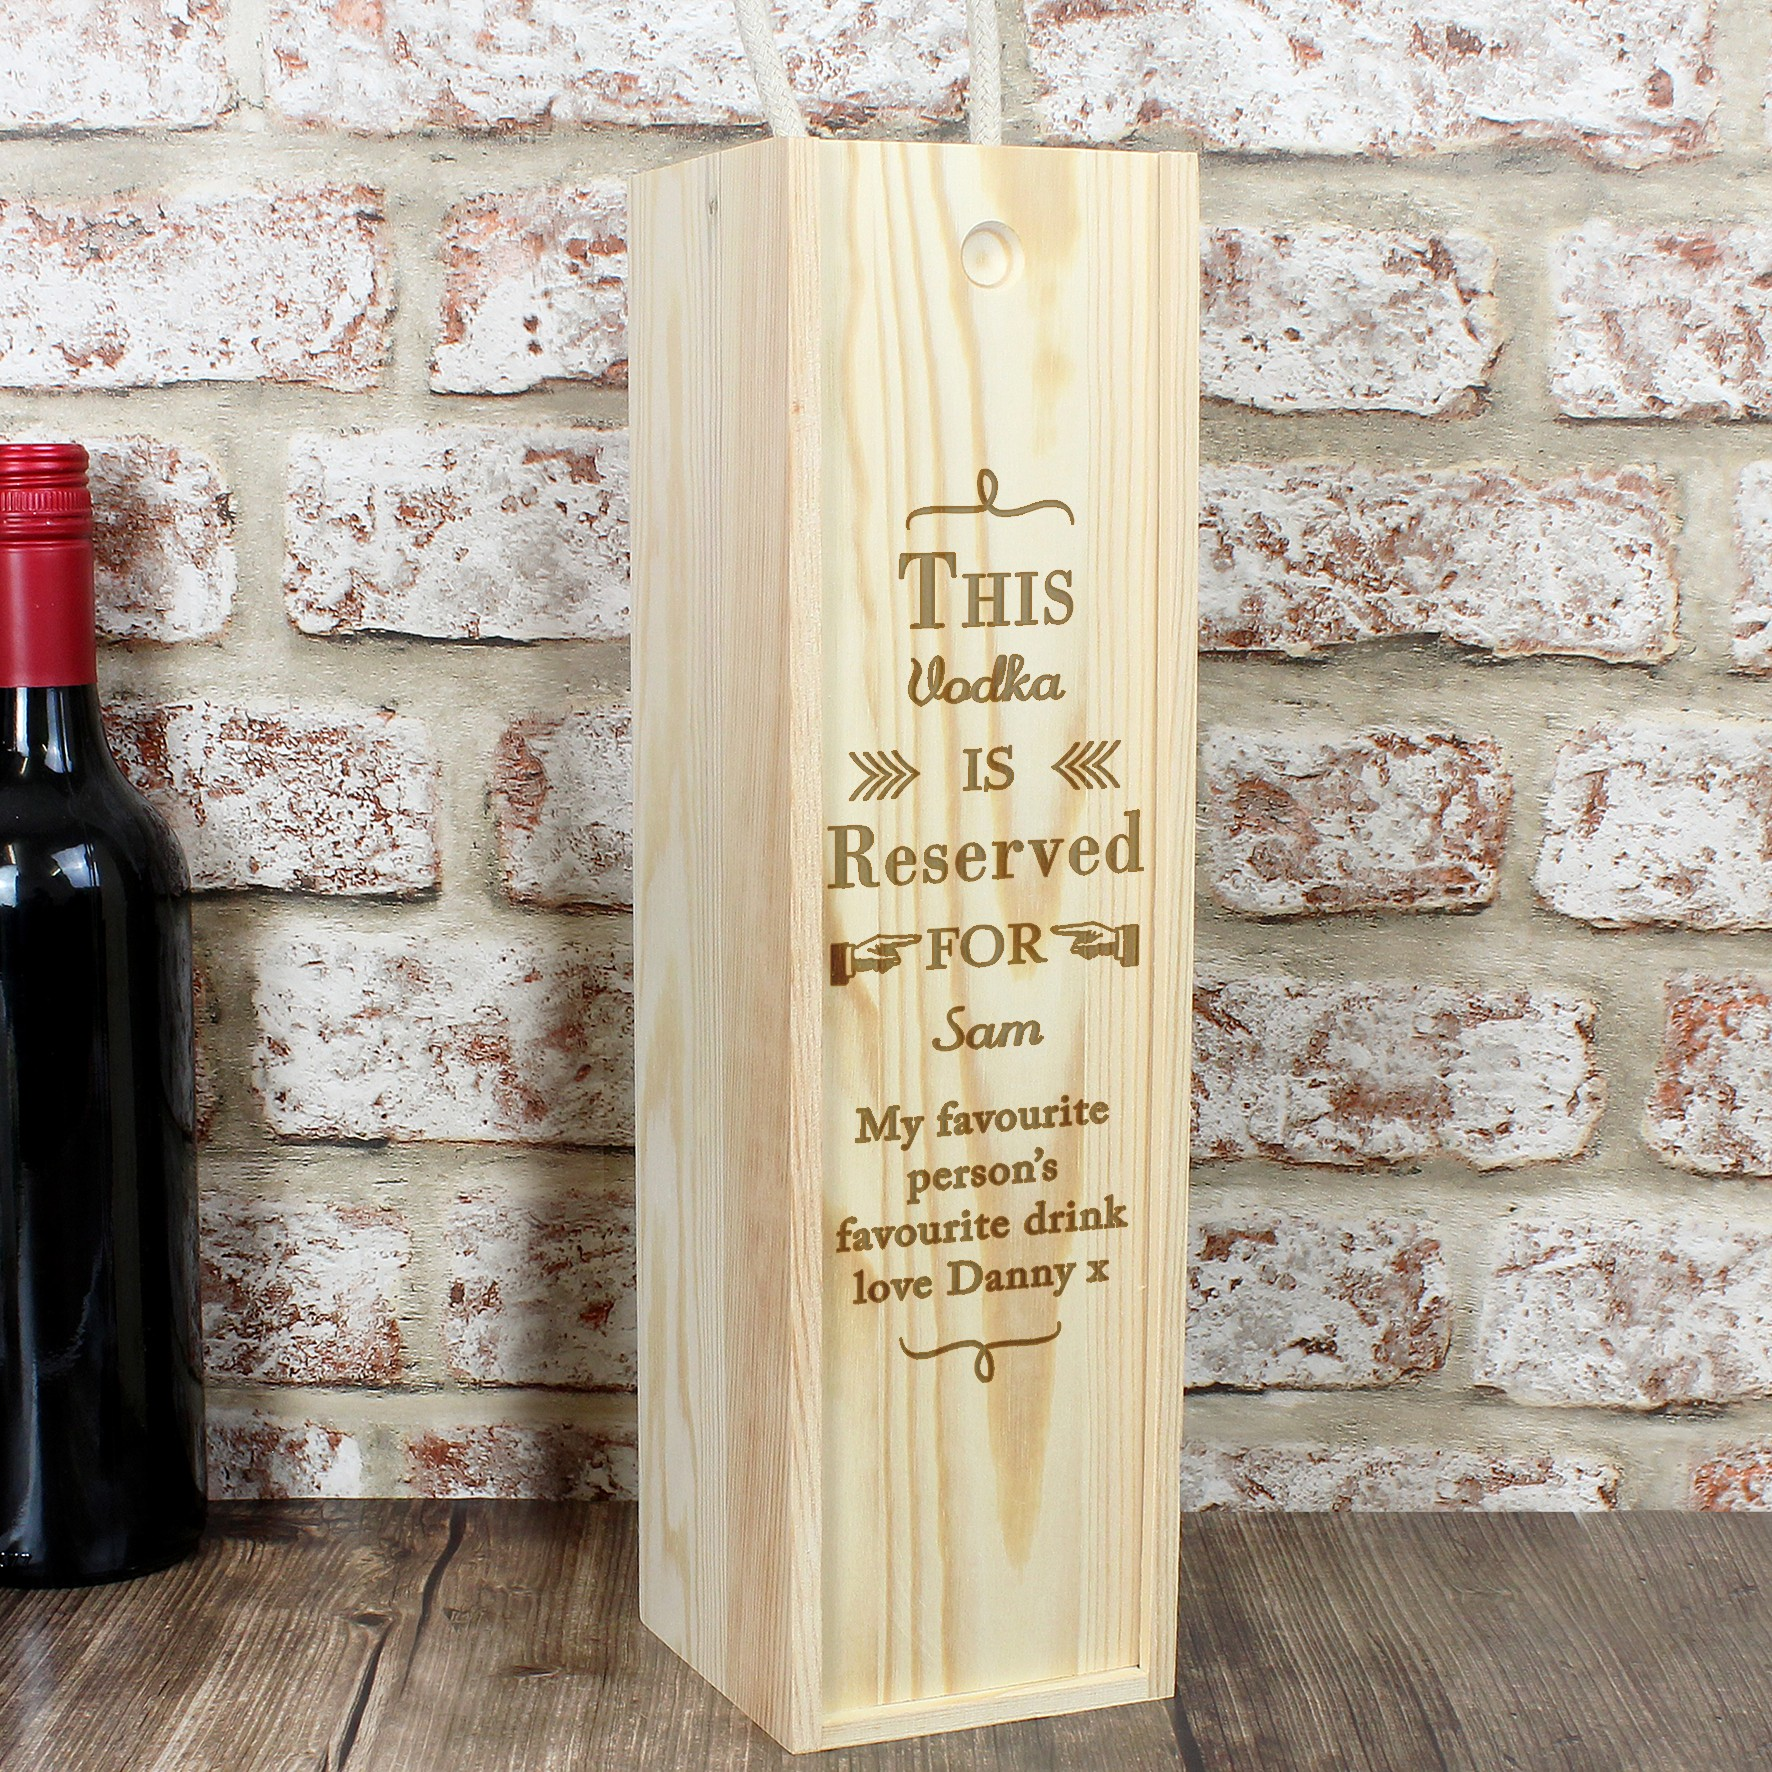 Other Celebrations Occasions Personalised Wine Bottle Presentation Box Special Occasion Gift Home Furniture Diy Rentwork Eu